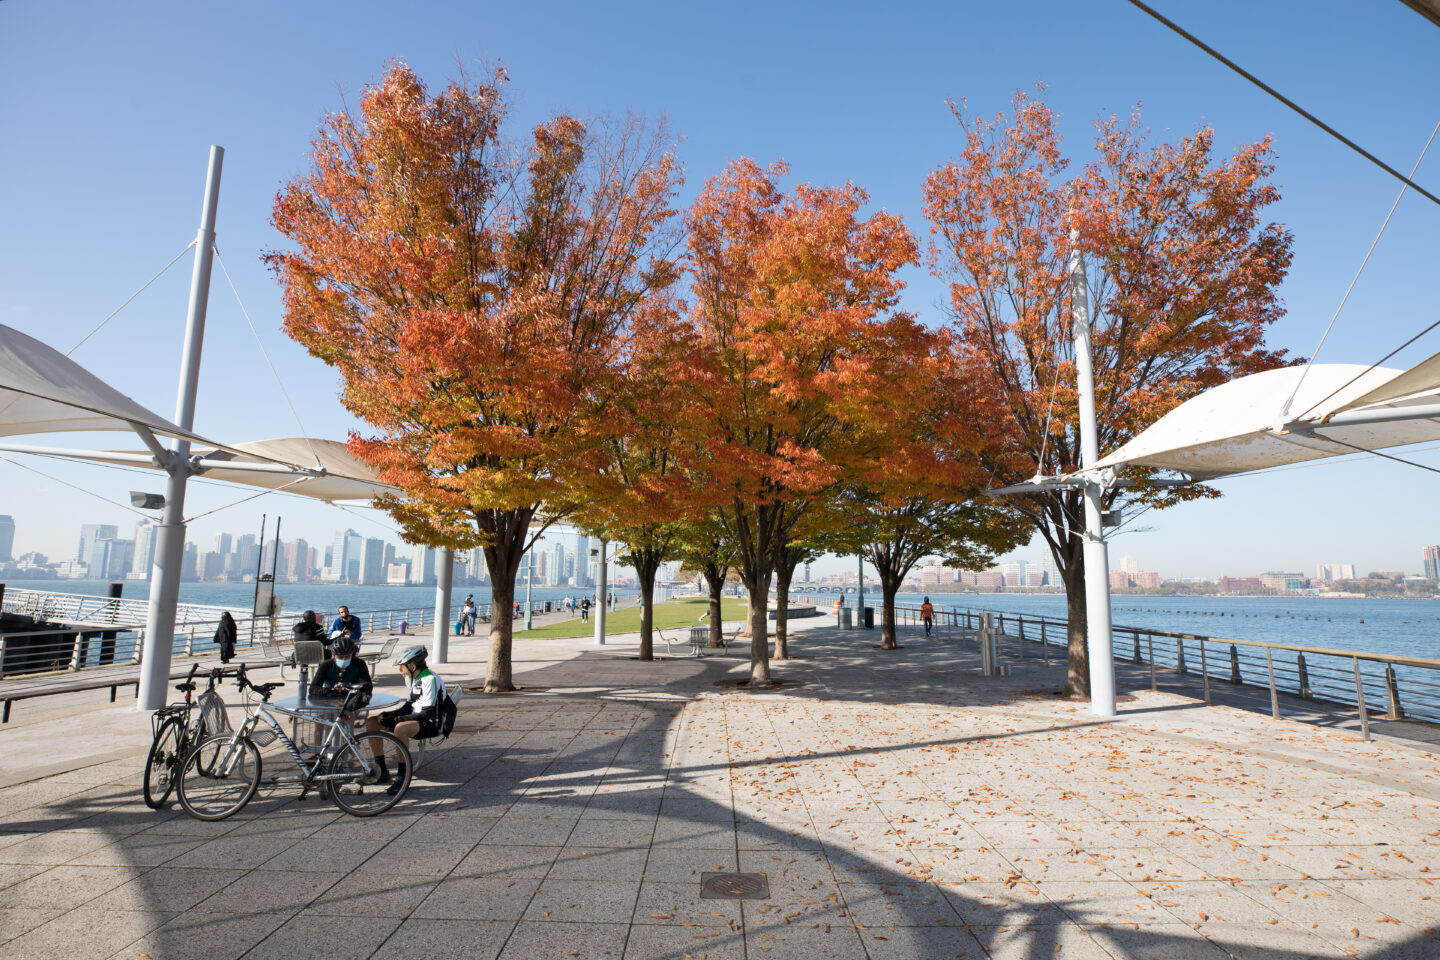 Pier 45 trees fall foliage 2020